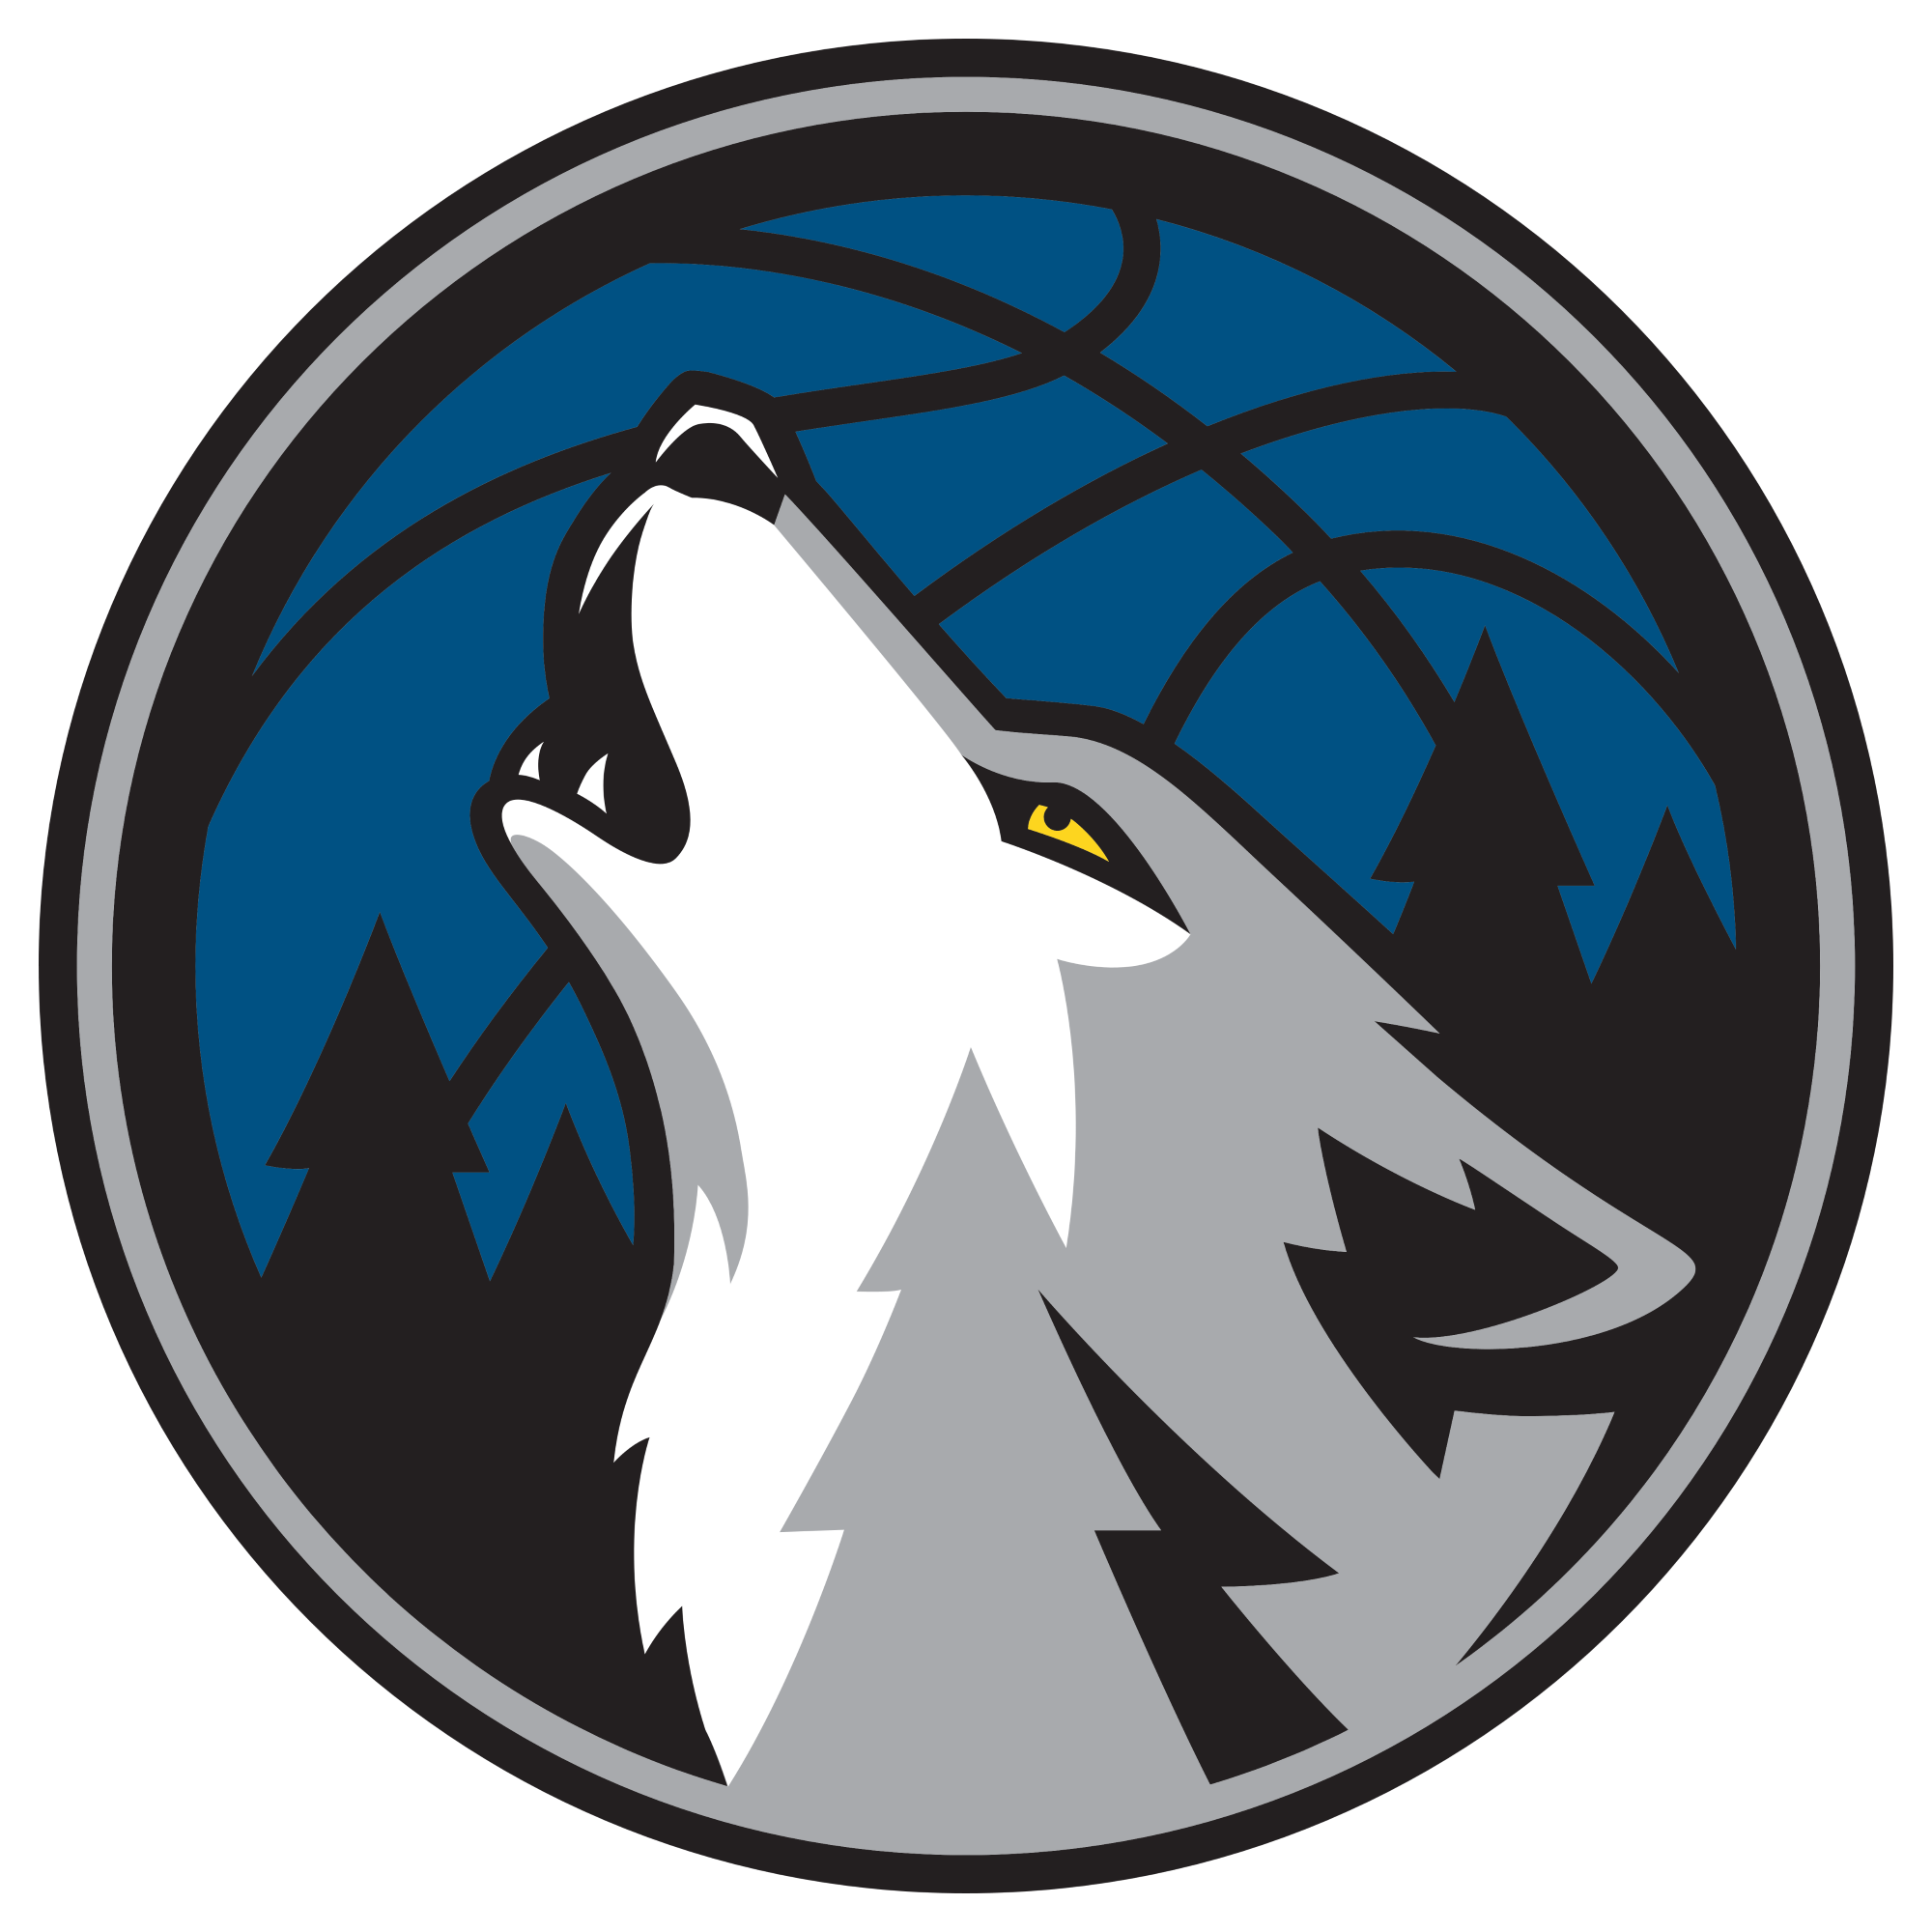 Minnesota Timberwolves officially unveil new logo - Minnesota Timberwolves  PNG - Minnesota Timberwolves PNG